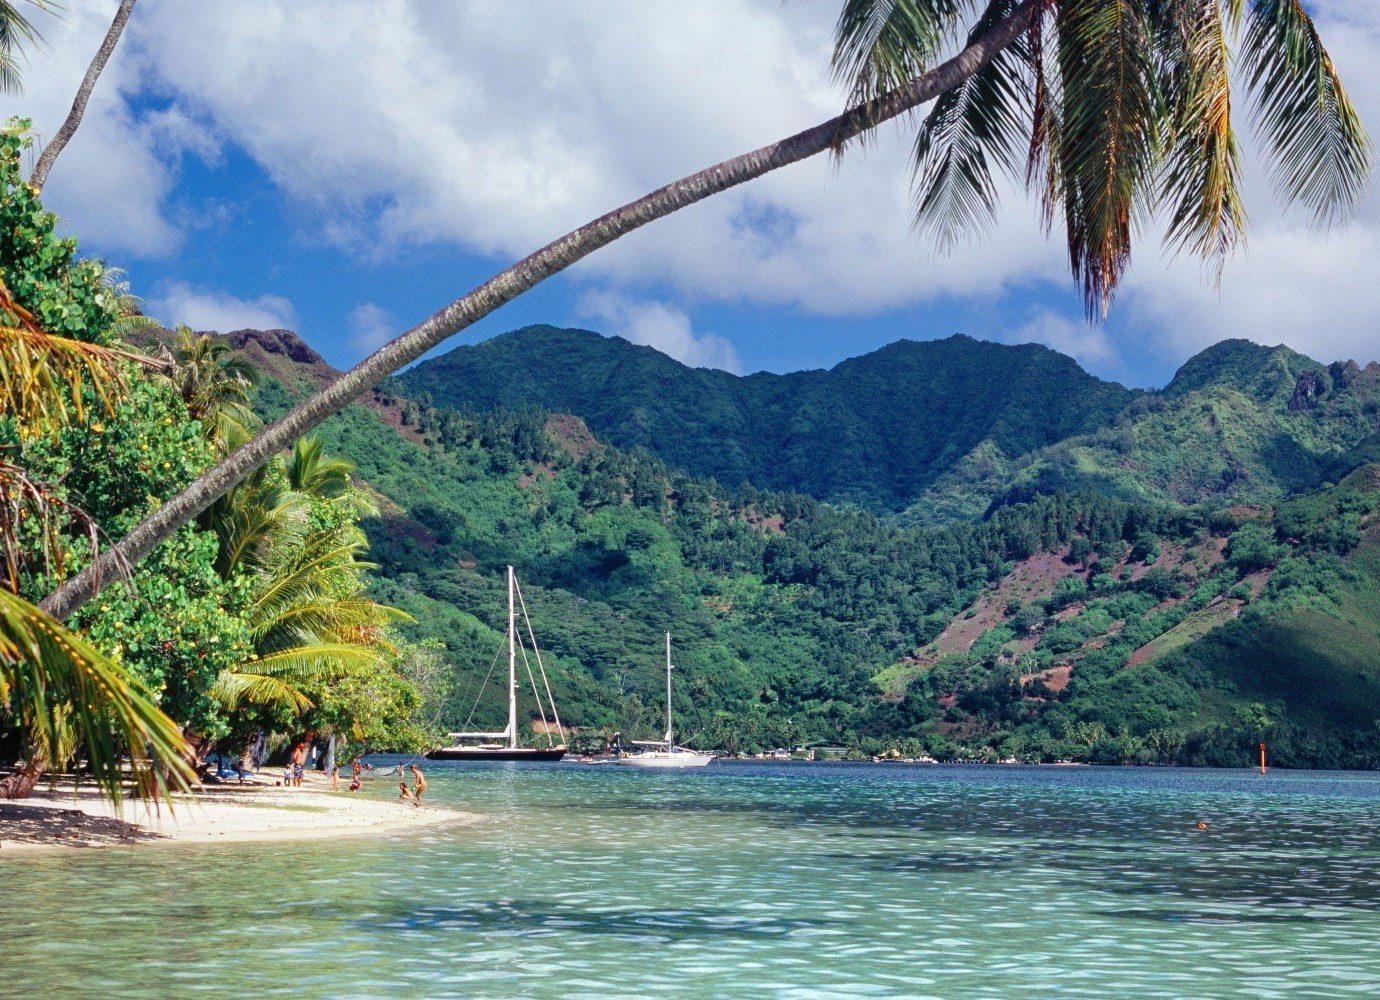 Trip Ideas tree outdoor water mountain landform geographical feature body of water Sea Lake River vacation background tropics Nature Coast bay tourism plant caribbean Beach Jungle boating Island palm surrounded shore day